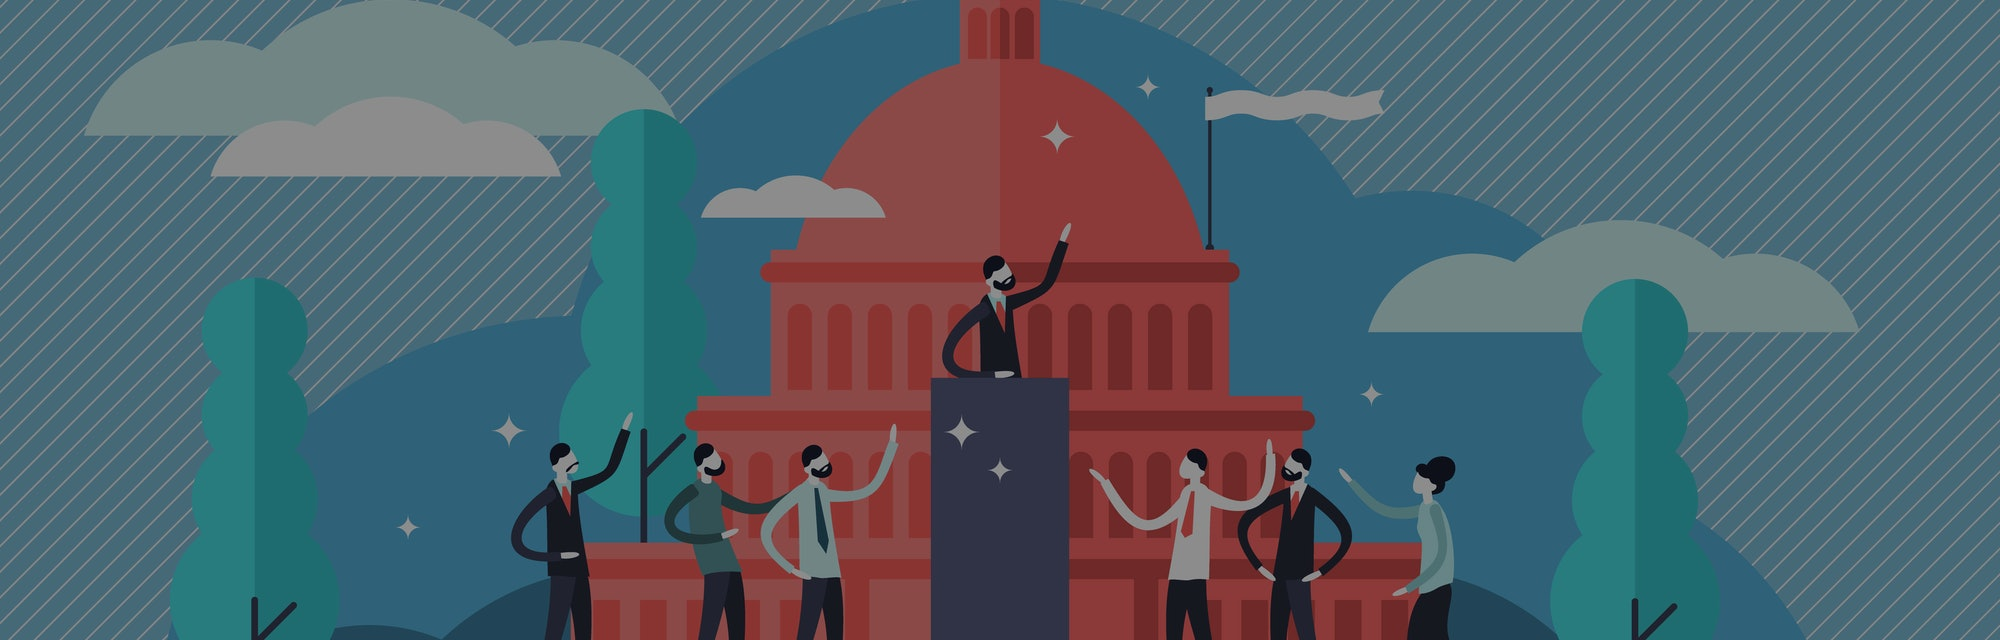 An illustration depicts a politician standing at the podium, presumably delivering a speech. At the bottom of the podium are people, both male and female, cheering the politician on. The image seems to be set in Capitol Hill. The dominant colors are red, blue, white.